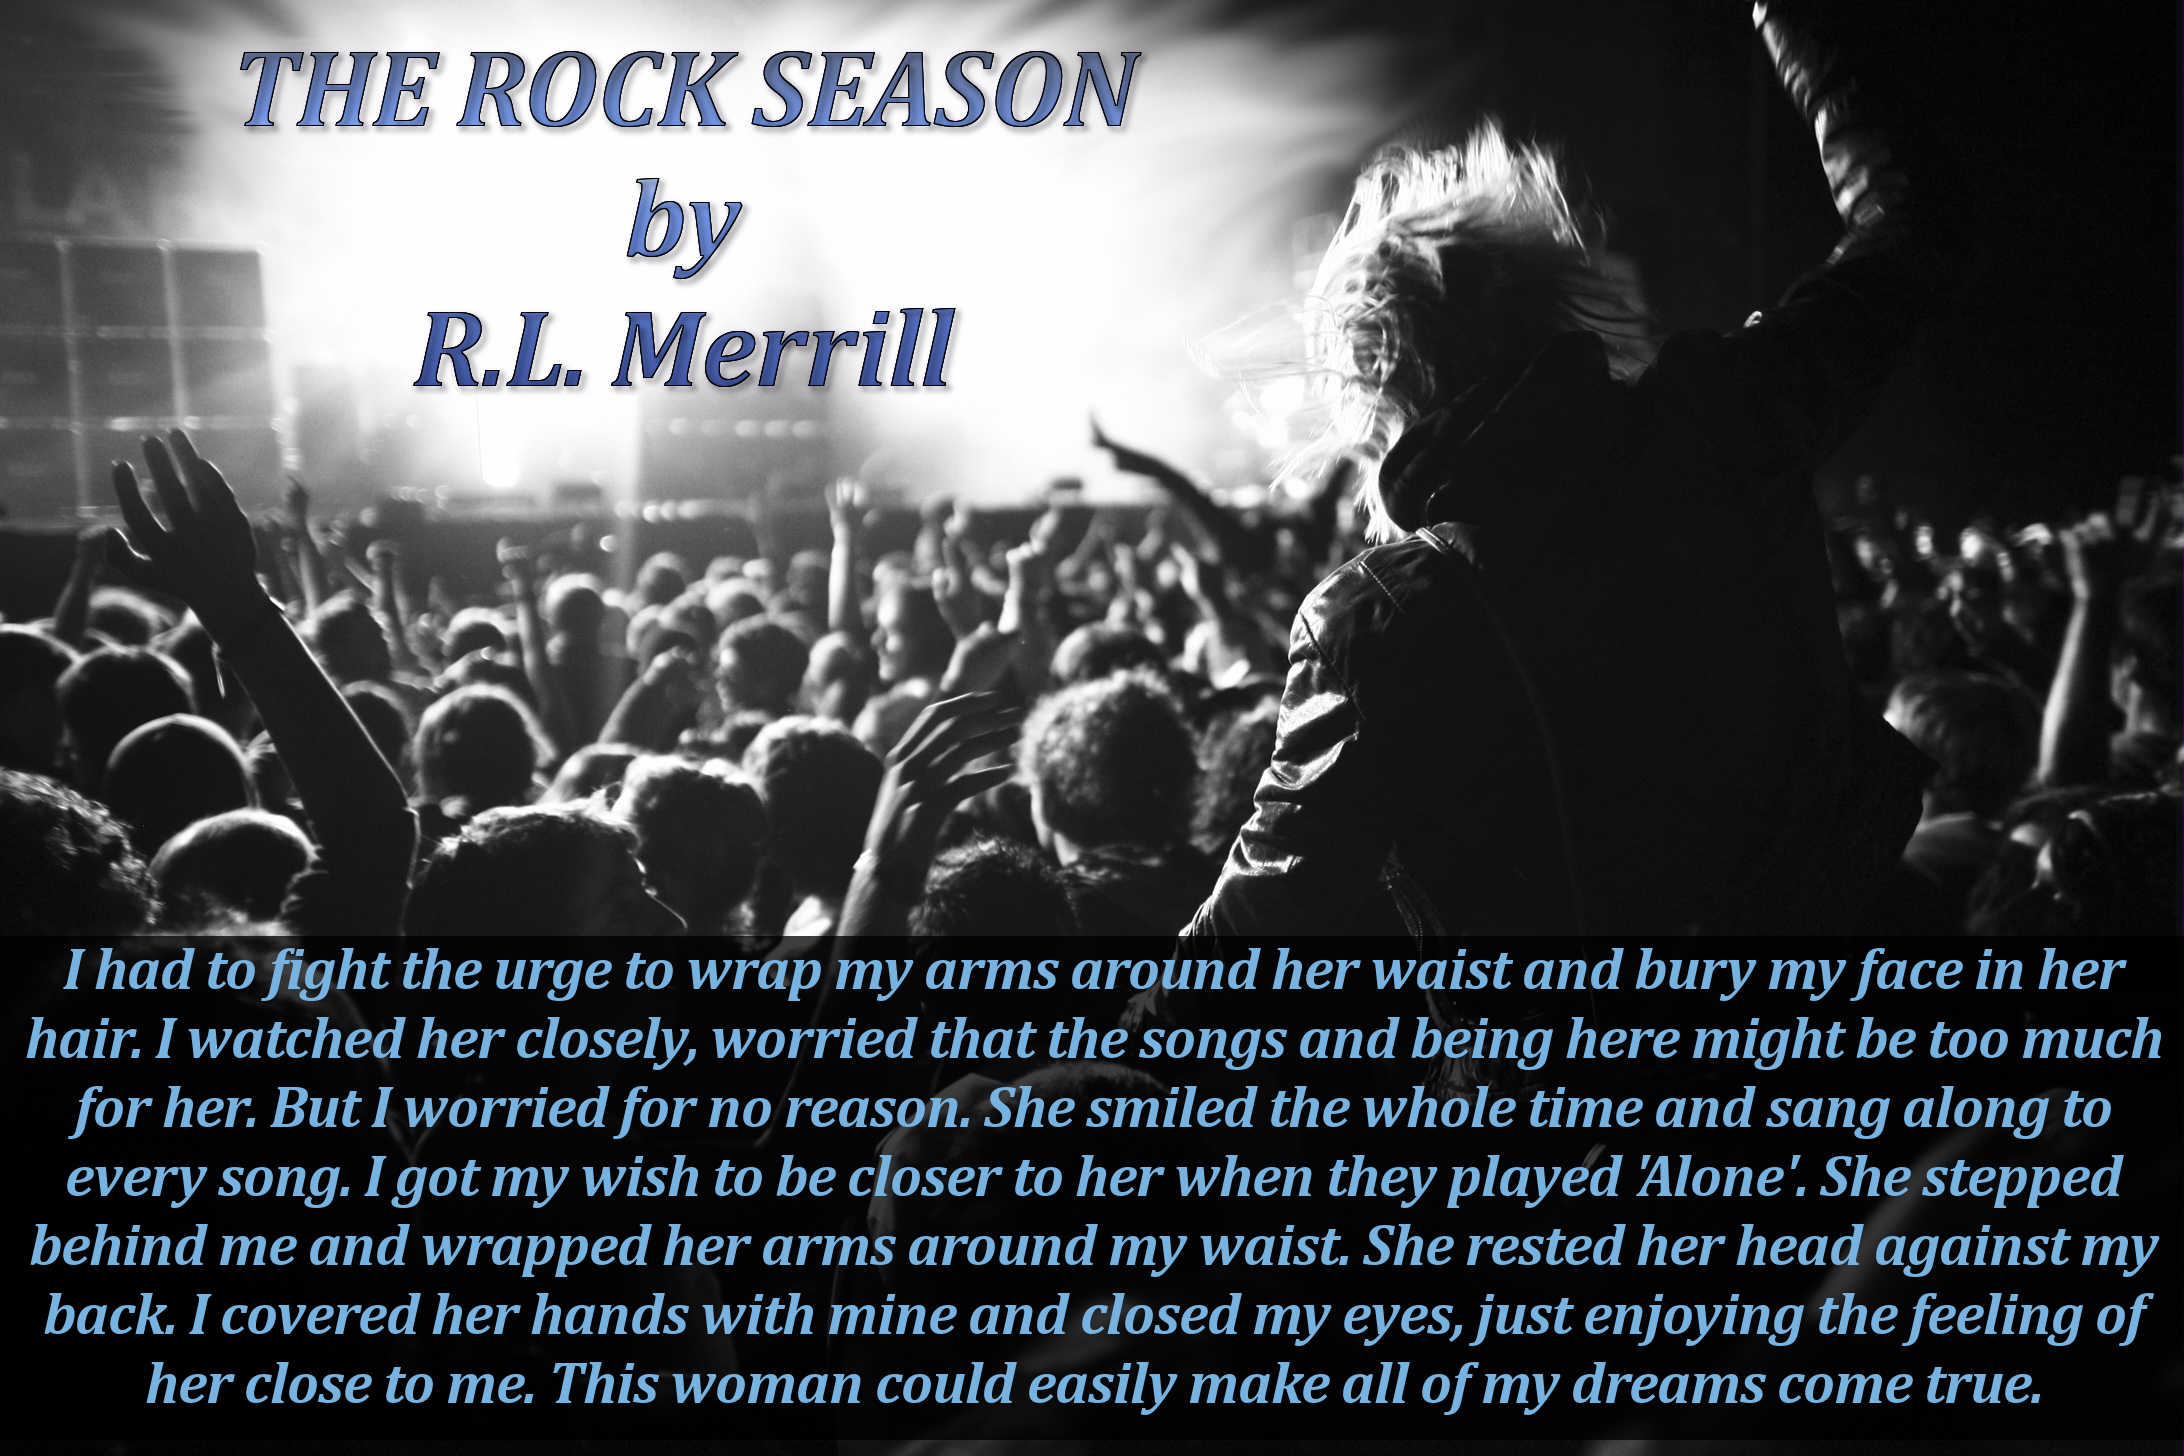 March 2015 authorsinterviews page 5 the rock season httpsmileazonthe rock season r l merrill ebook dpb00ry9zmjerefpdsimkstore2ieutf8refrid1ms7ffqqctx063xmpwcv fandeluxe Images